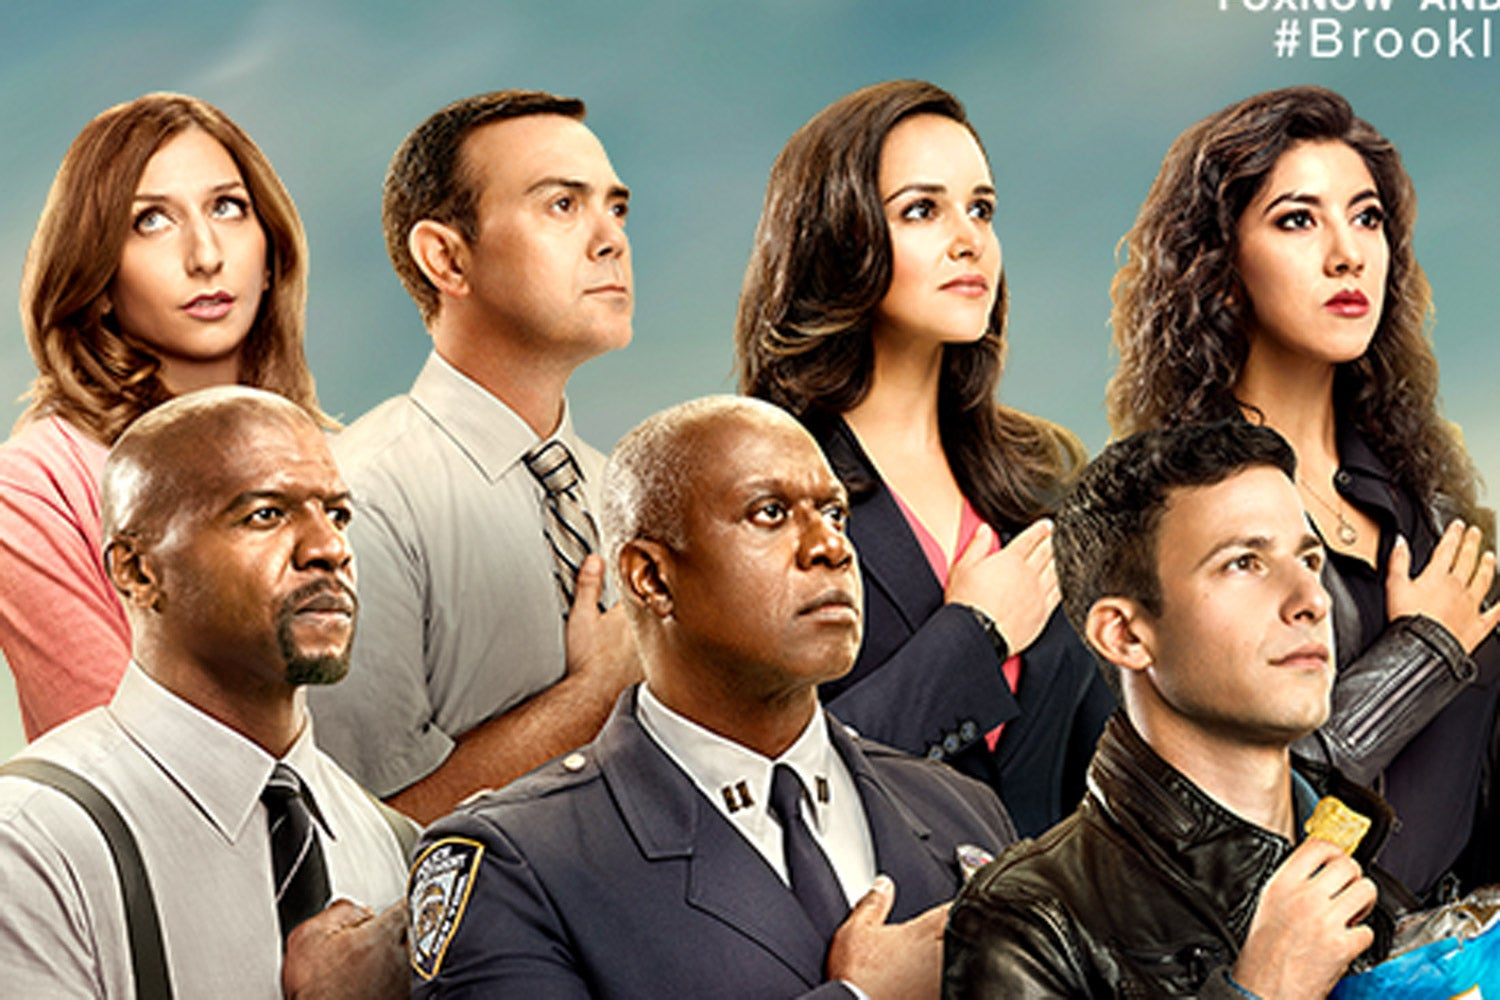 Brooklyn Nine-Nine Season 8 Renewal and Release Date